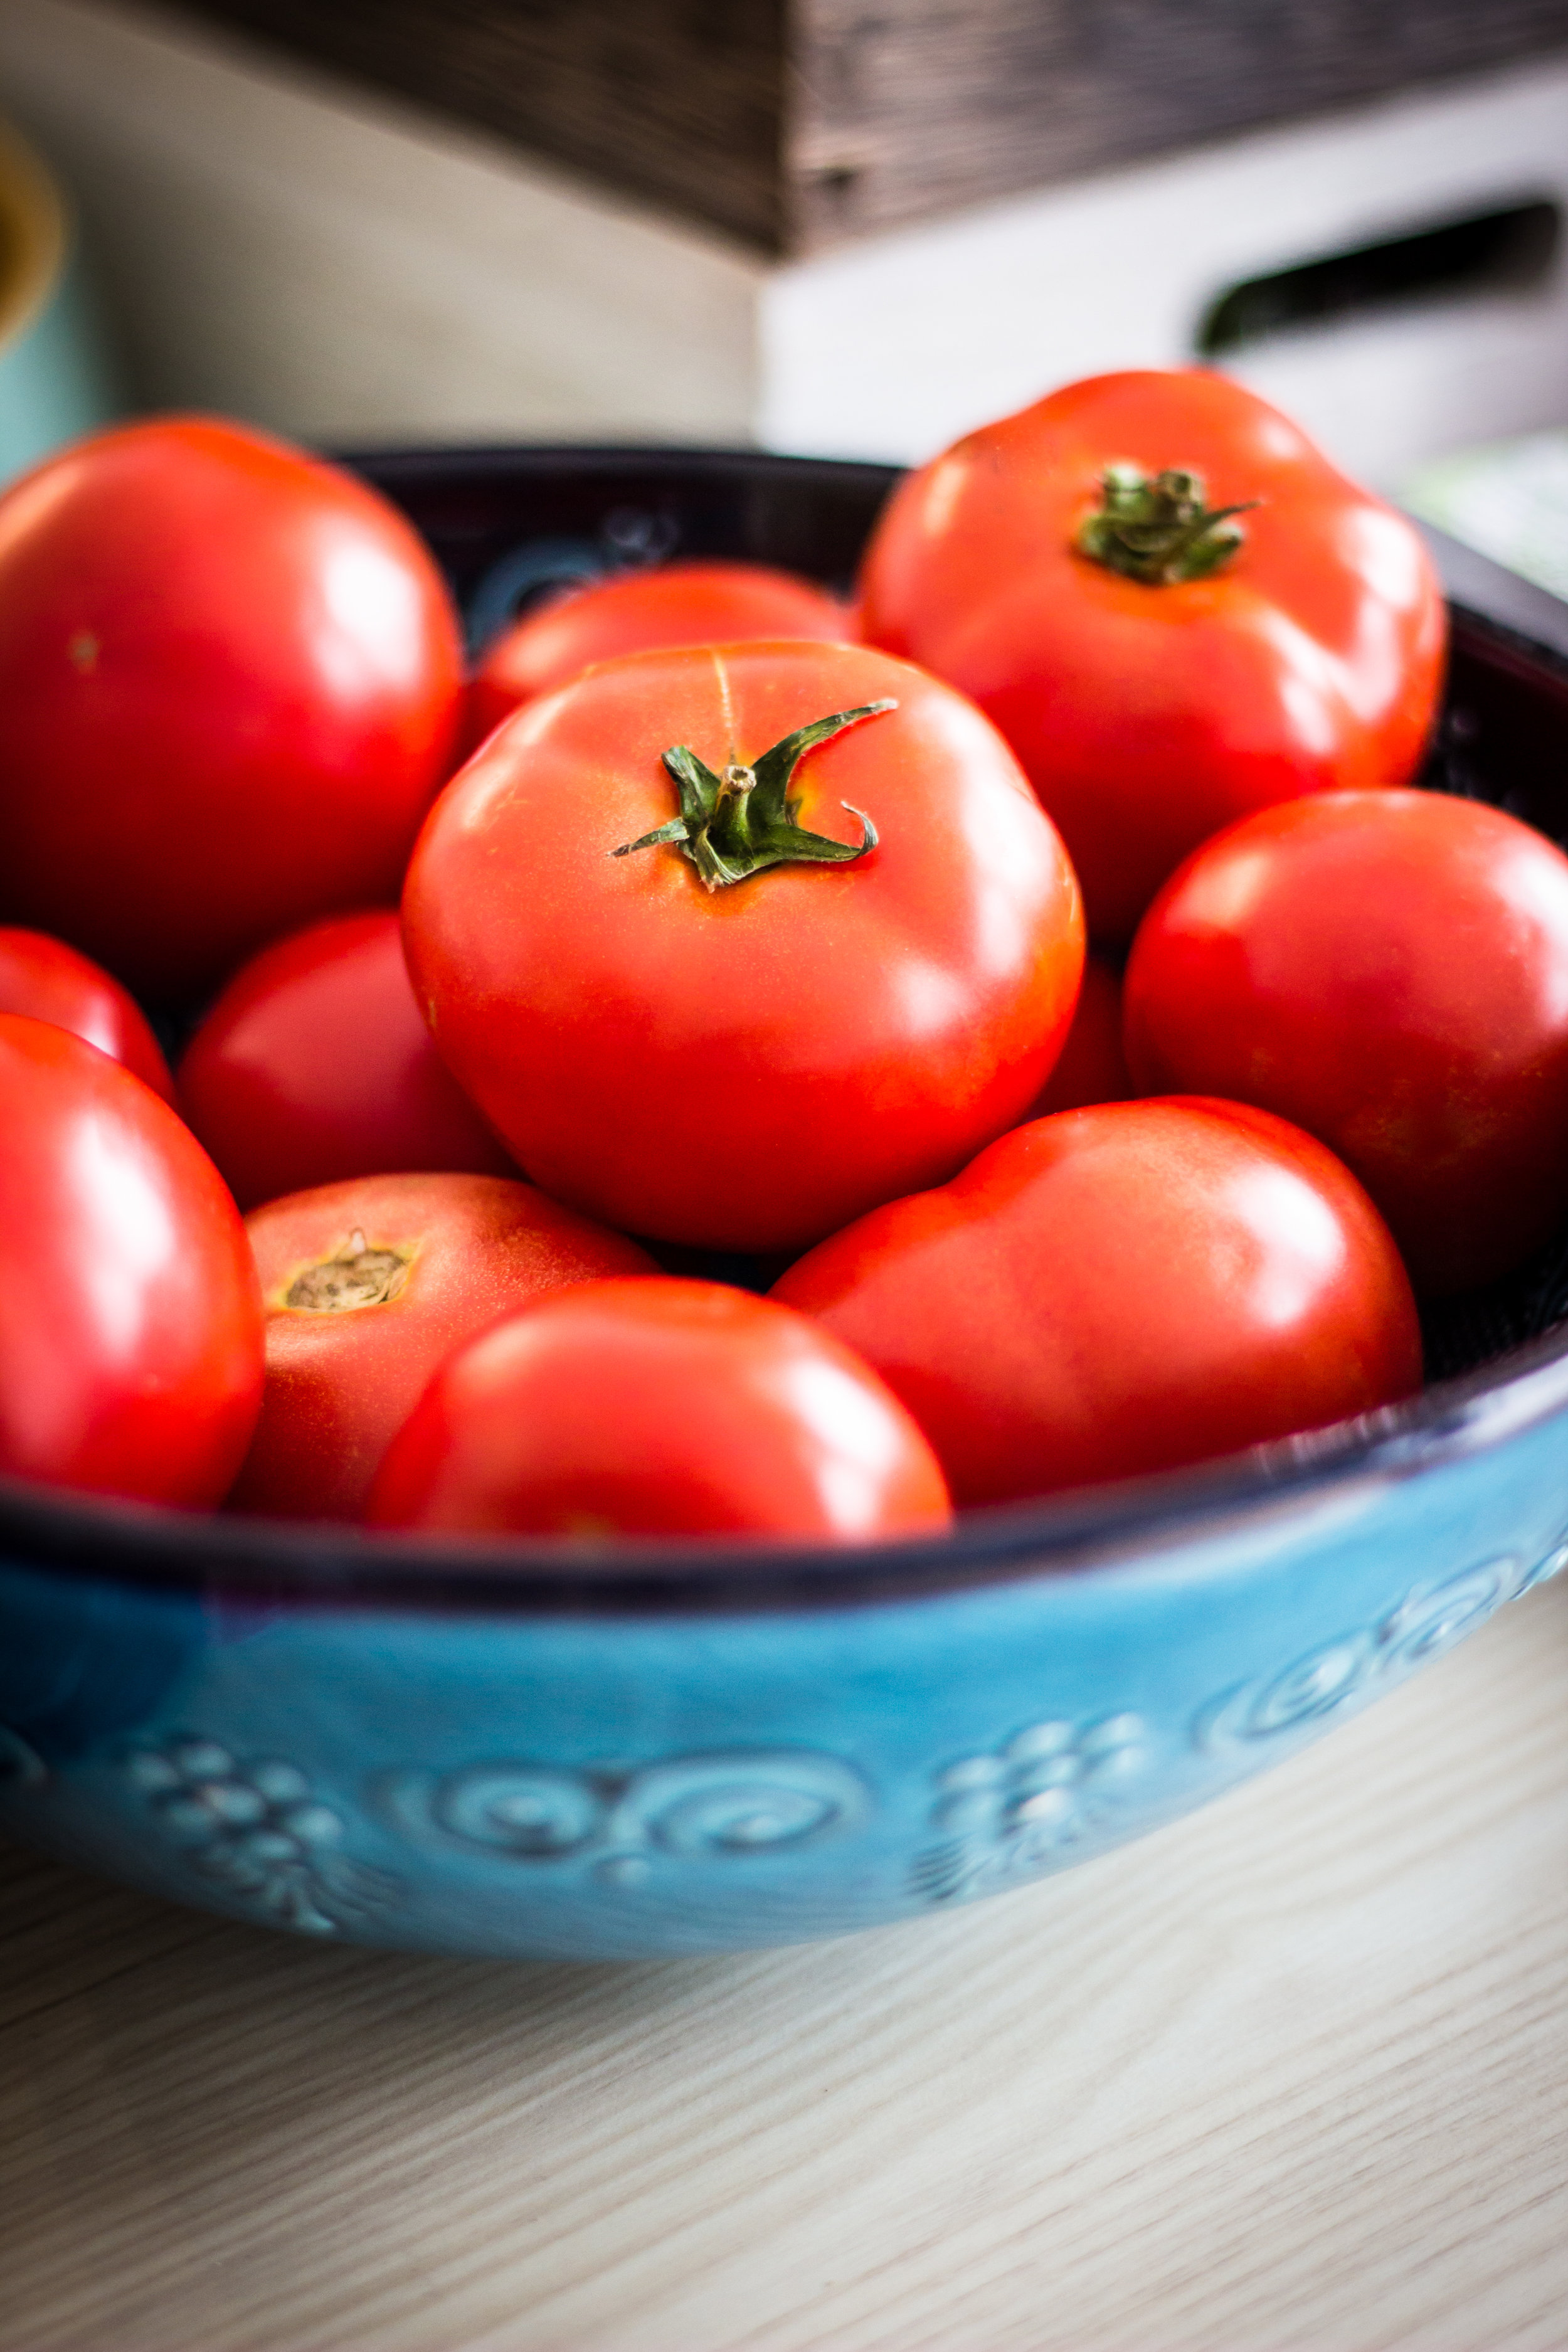 Cooking classes focused on using fresh, easy to find produce.